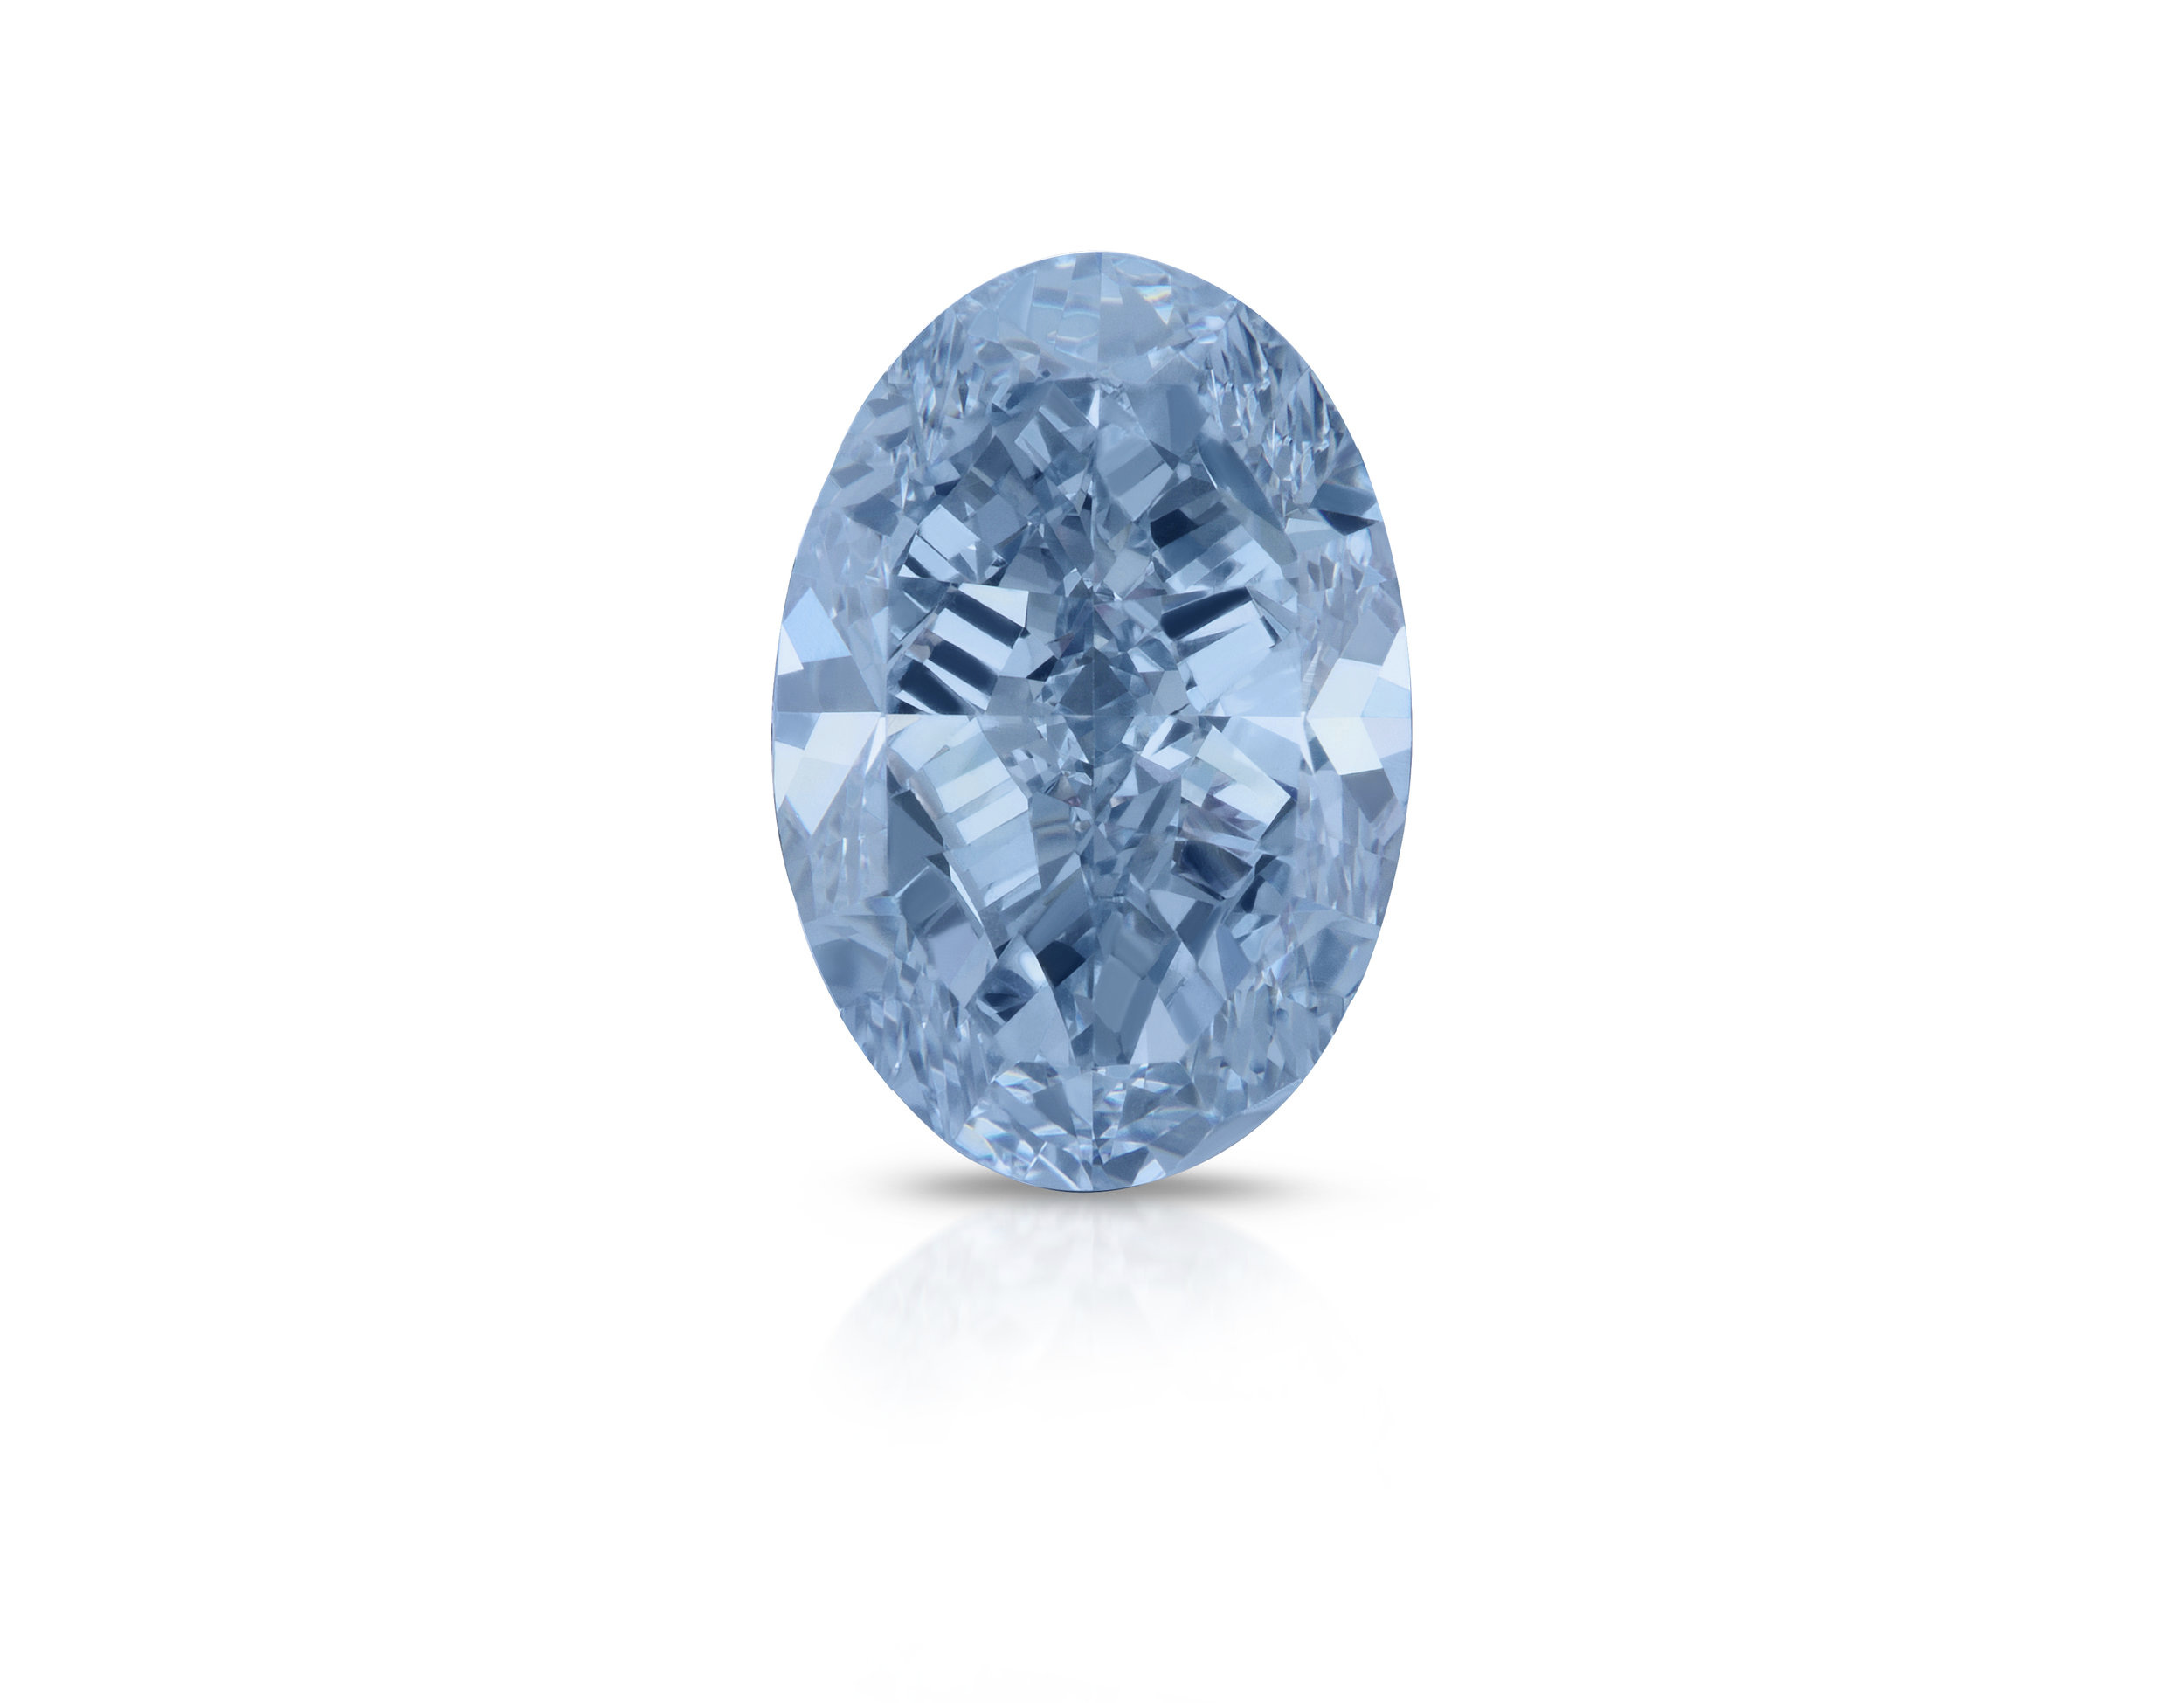 the final results after examine, cutting and polishing is a 3.04 carat intense blue vs oval shaped diamond